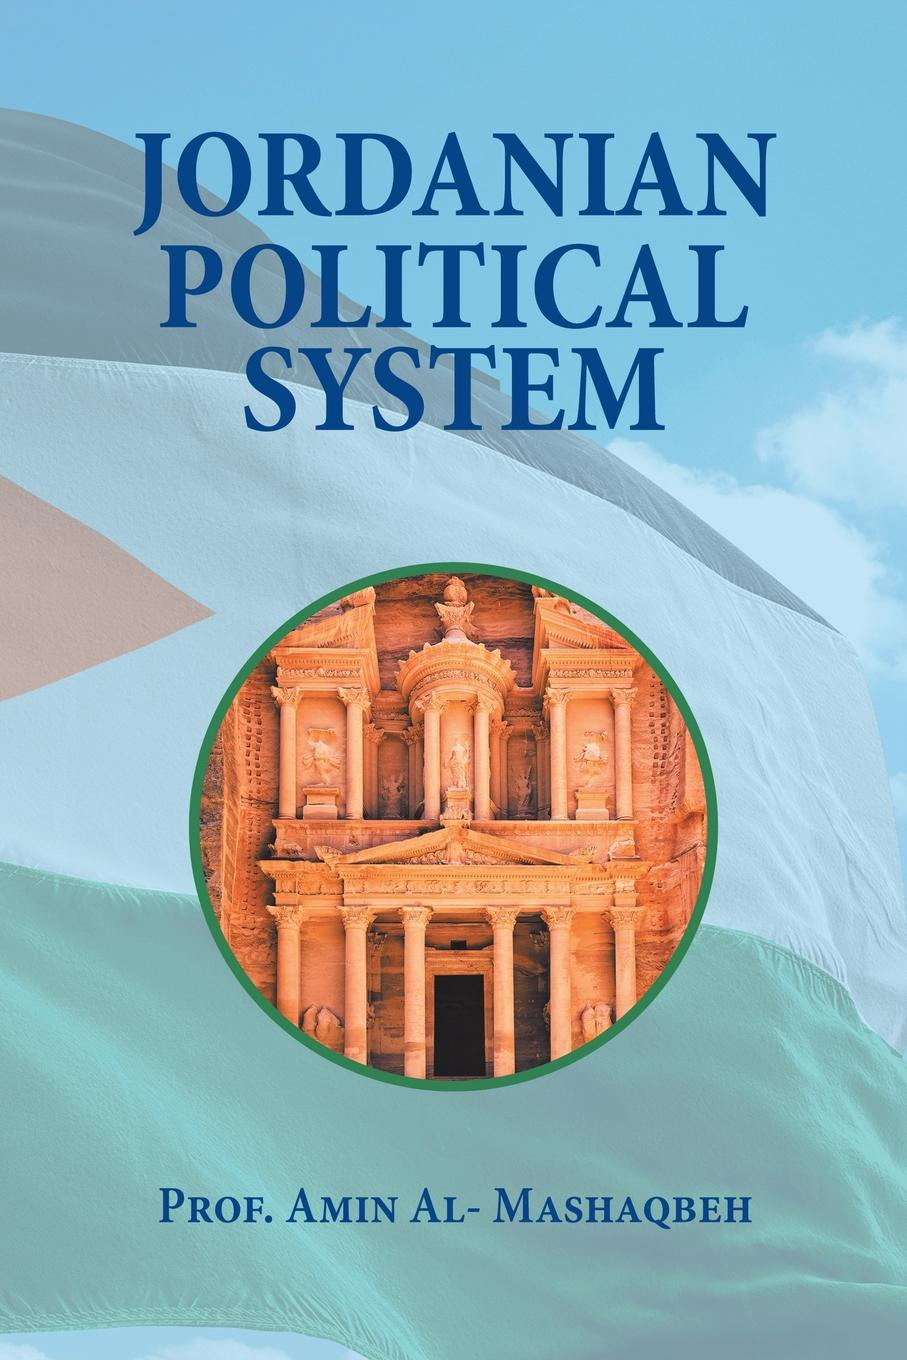 Prof. Amin Al-Mashaqbeh Jordanian Political System alexey szydlowski ferguson model of the racial political conflict constitutional and legal aspects